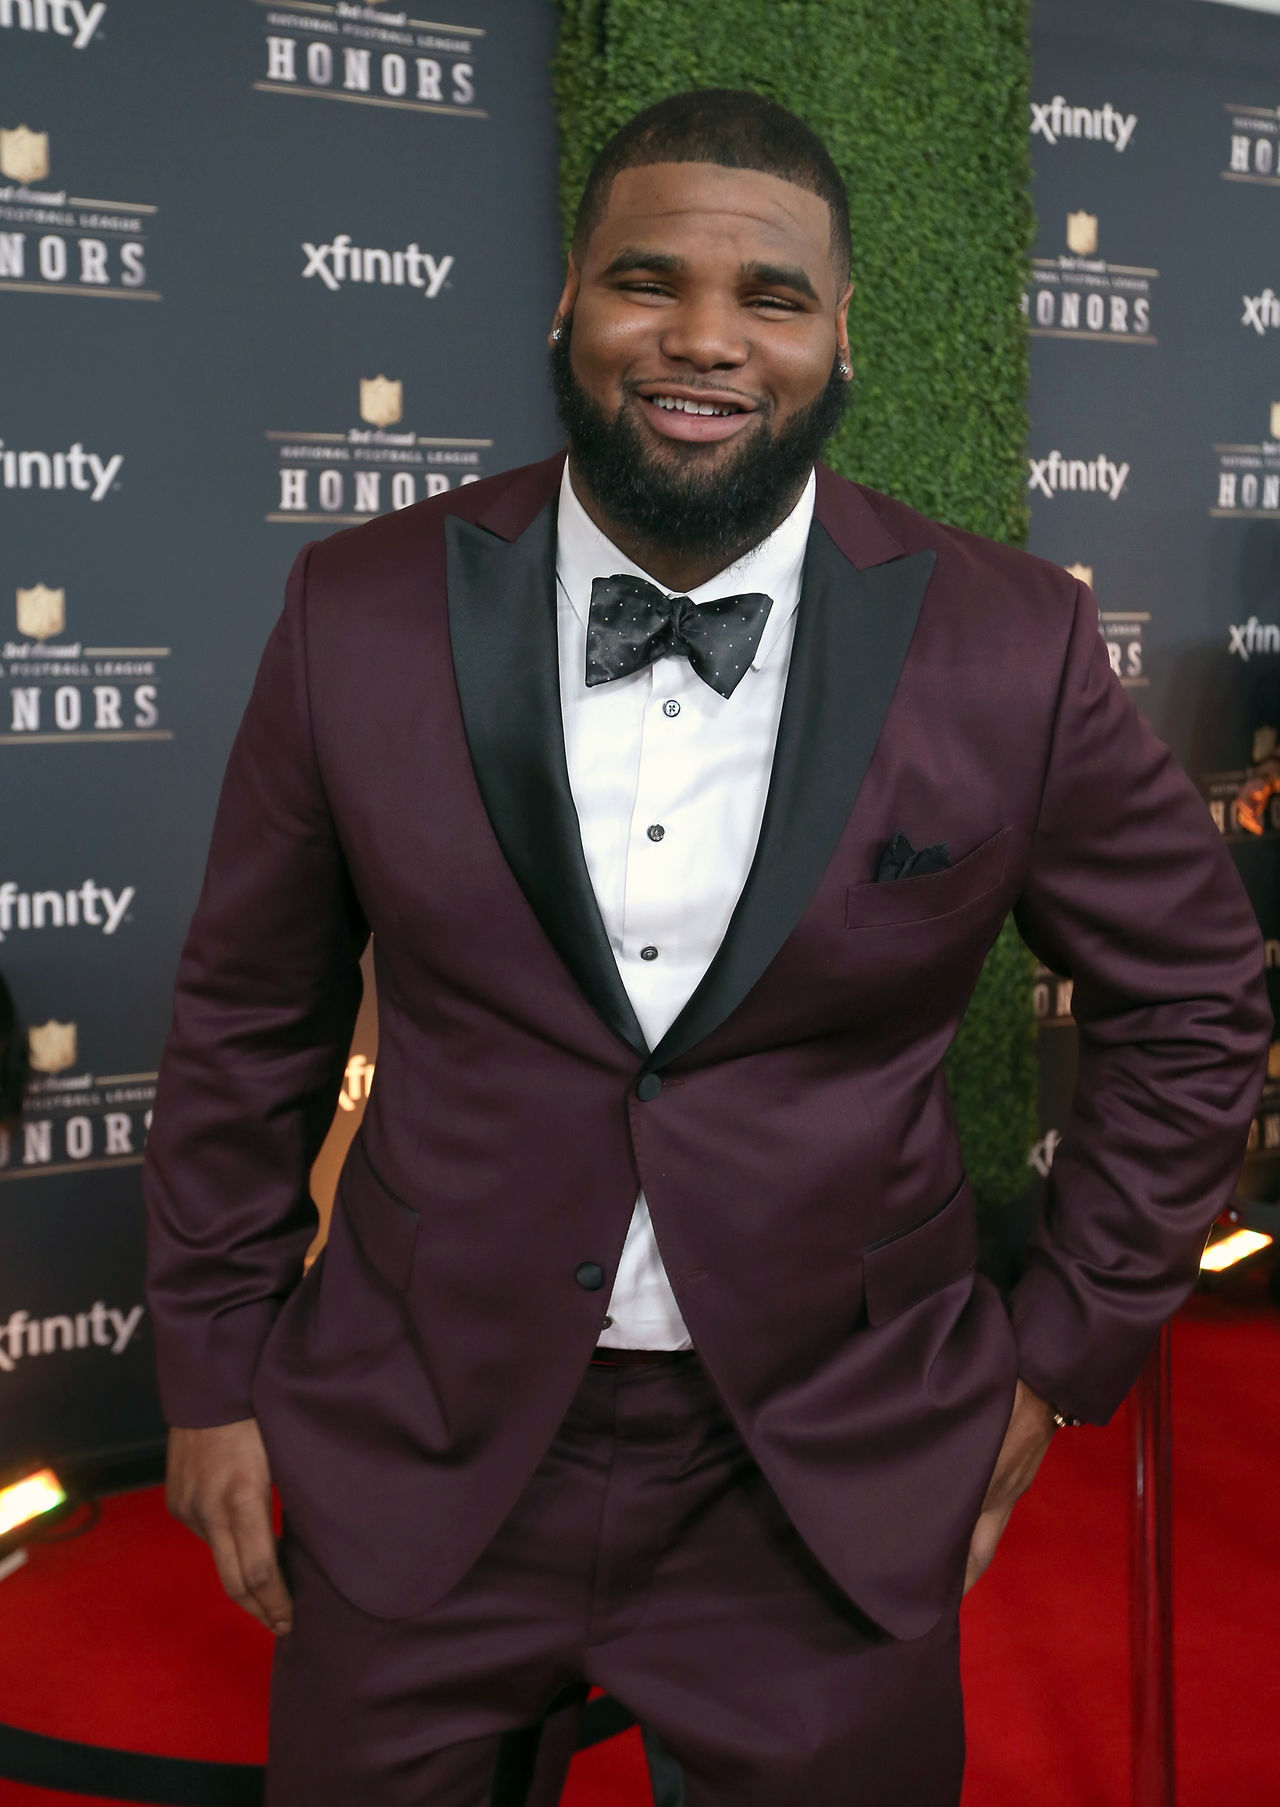 New-York-Jets-Sheldon-Richardson-NFL-Honors